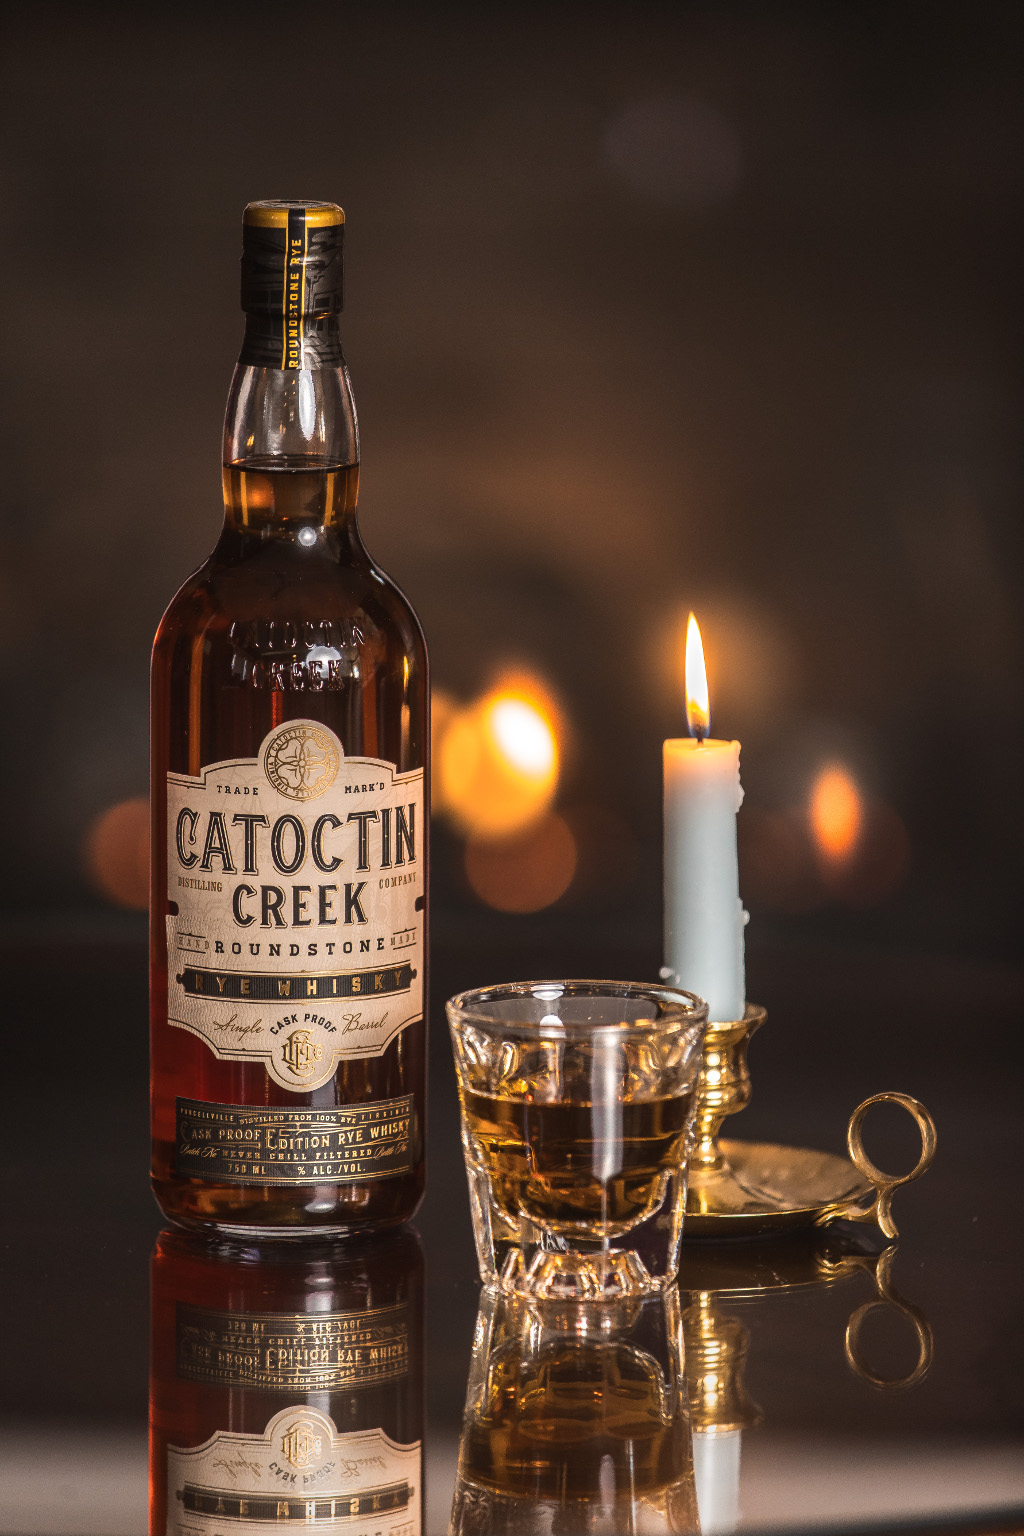 Catoctin Creek Cask Proof